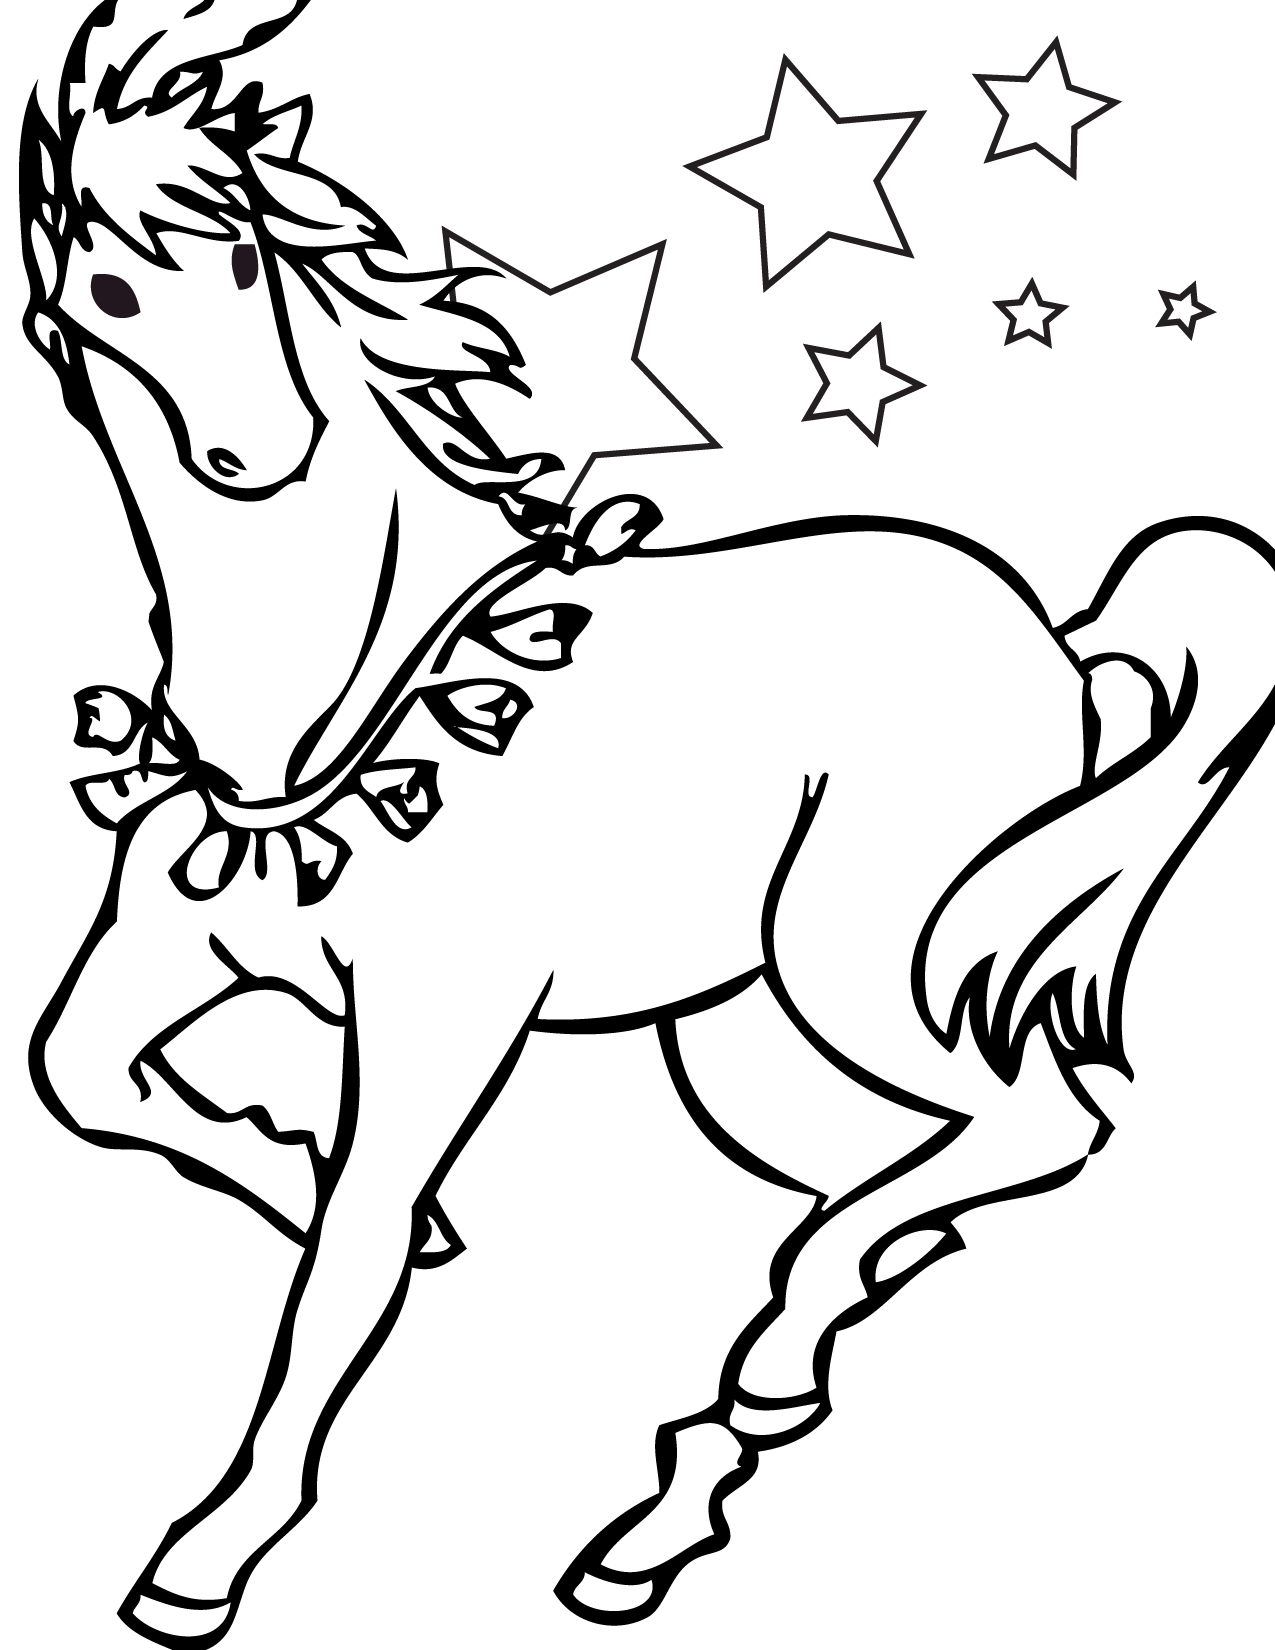 printer coloring pages - free printable horse coloring pages for kids